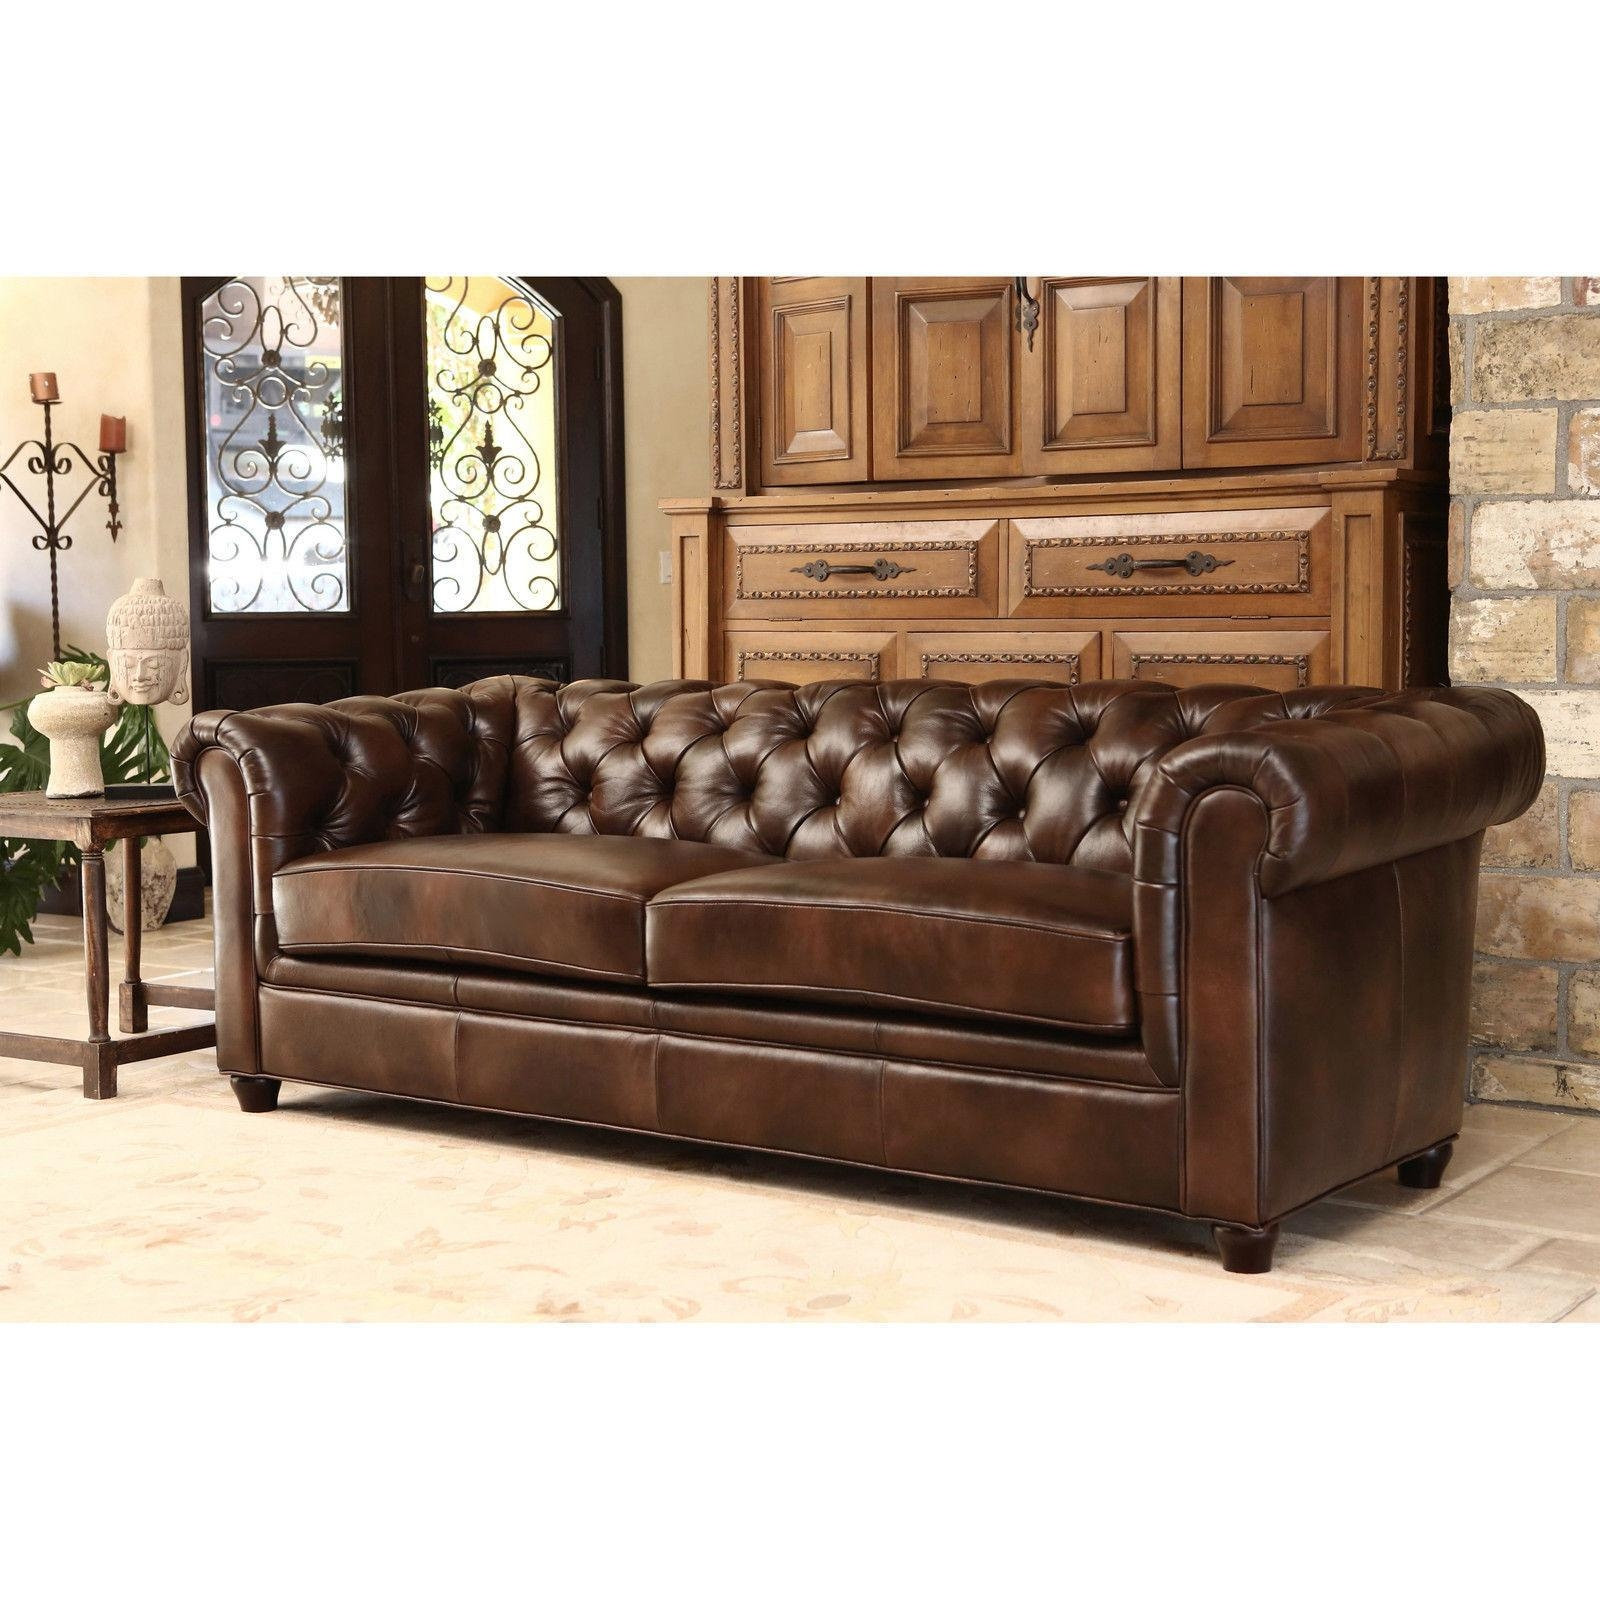 tufted brown leather sofa foam seat cushions for 2018 latest sofas ideas